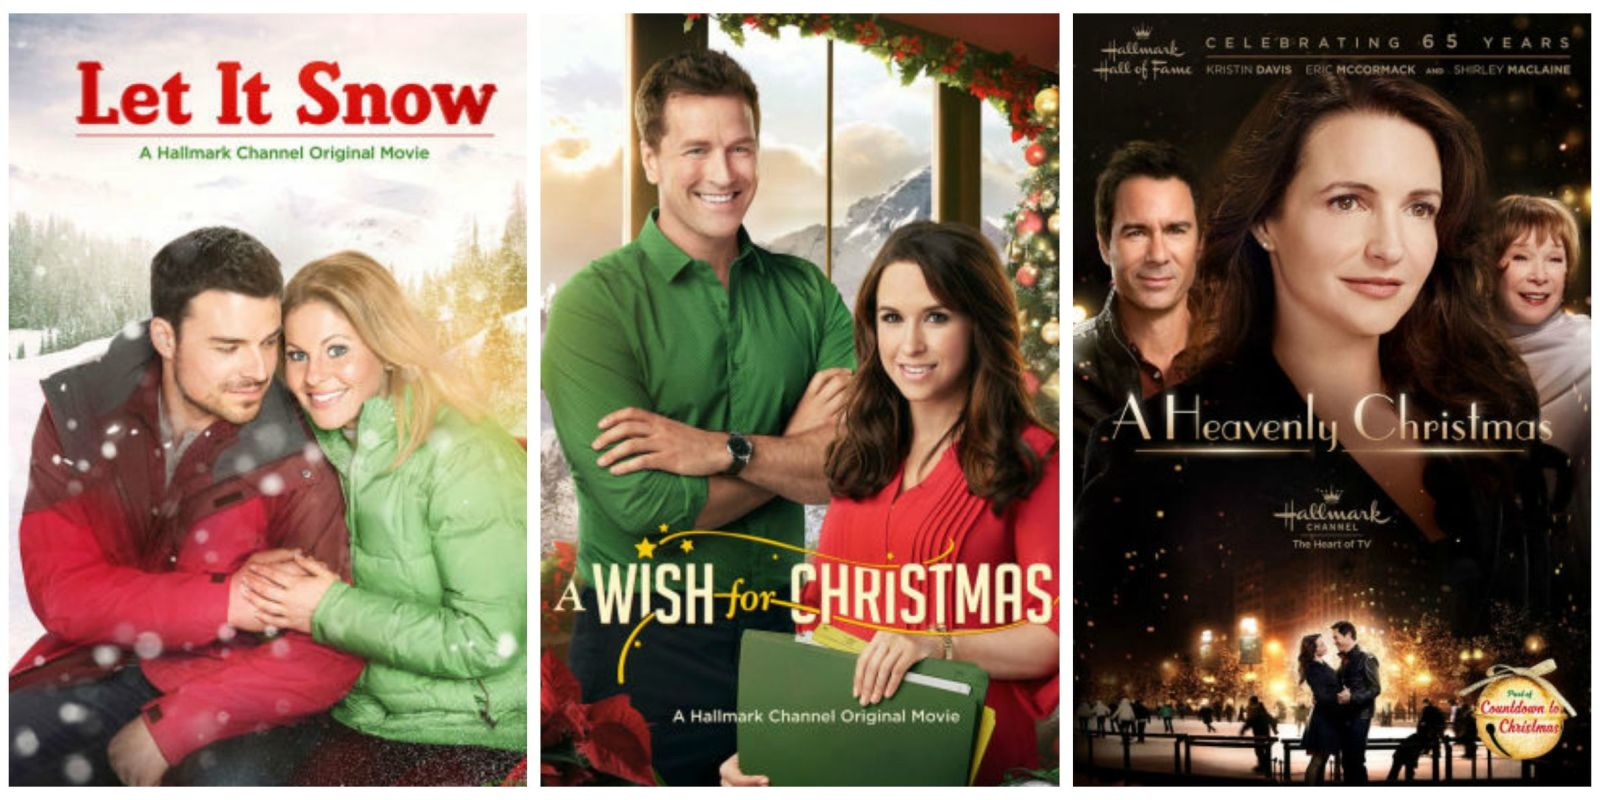 Hallmark christmas in july 2017 holiday movie lineup for Hallmark christmas in july 2017 schedule